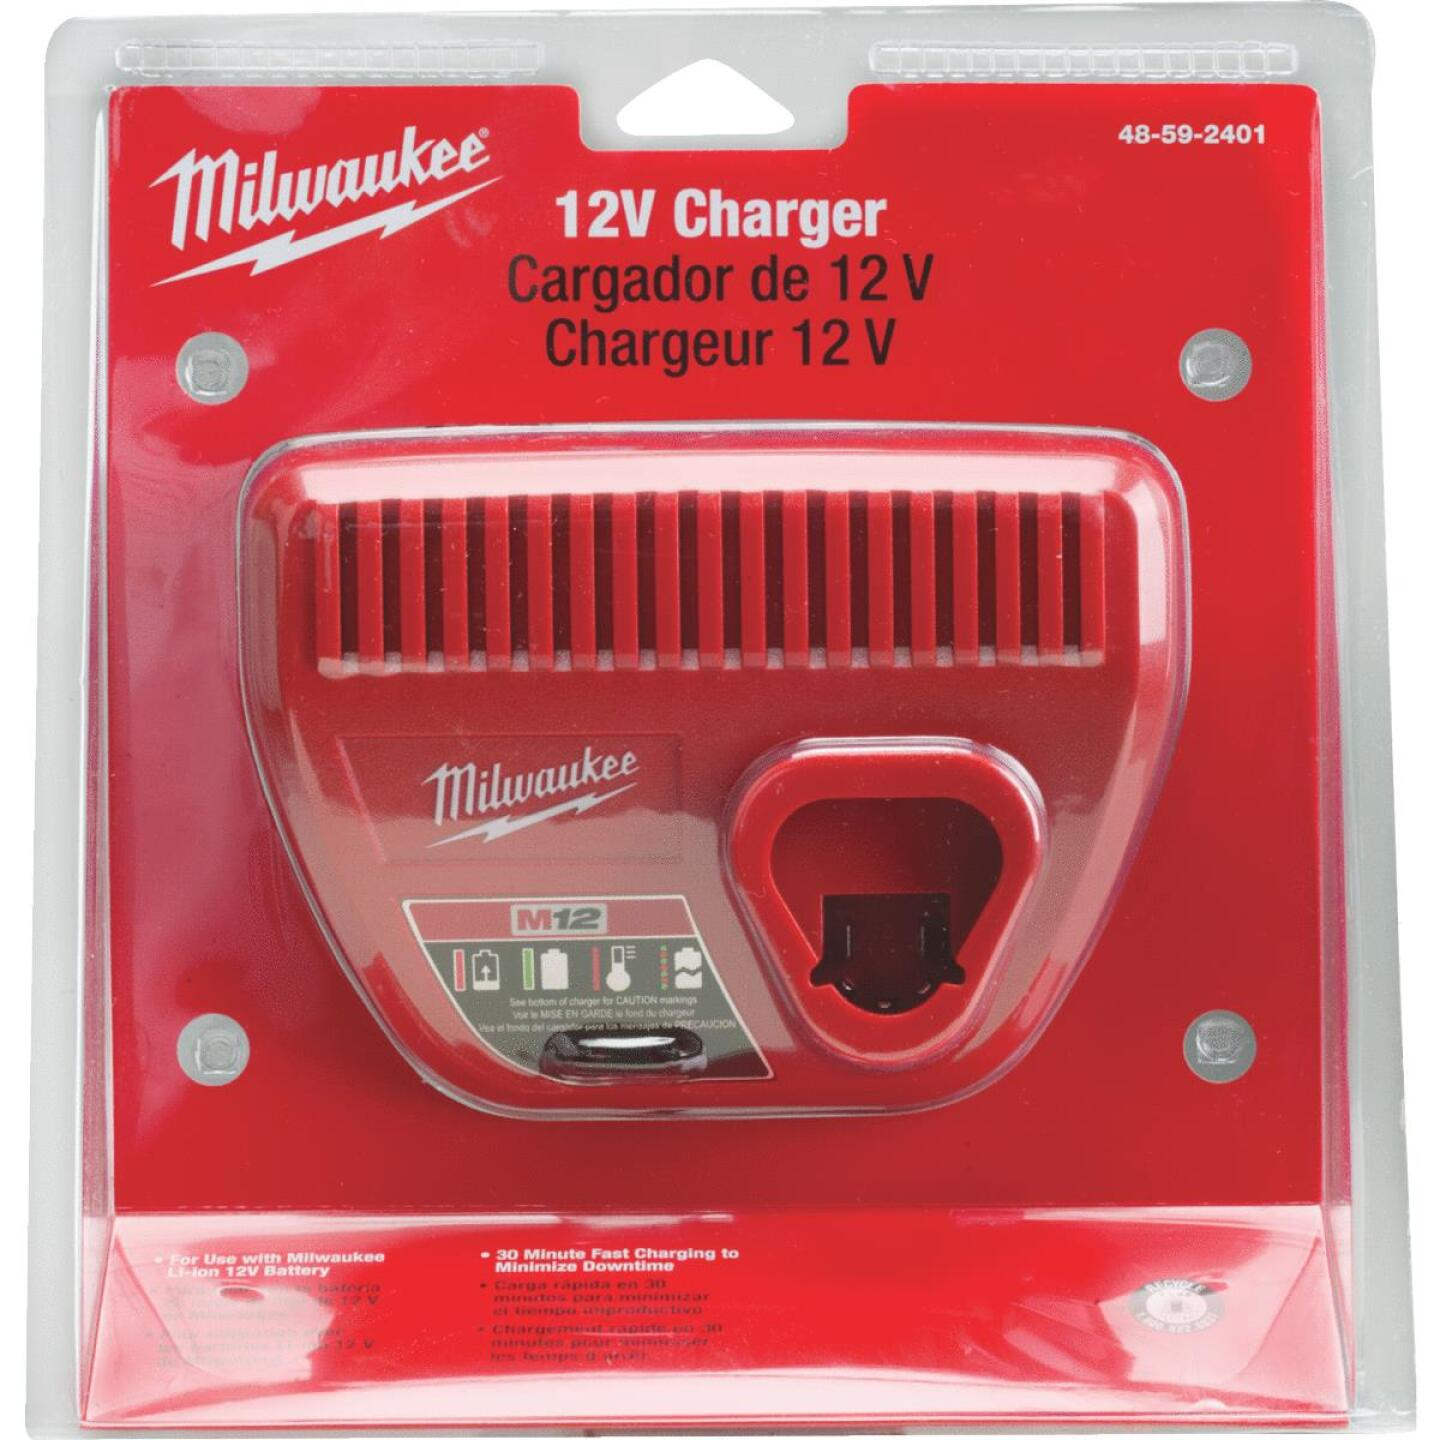 Milwaukee M12 12 Volt Lithium-Ion Battery Charger Image 2